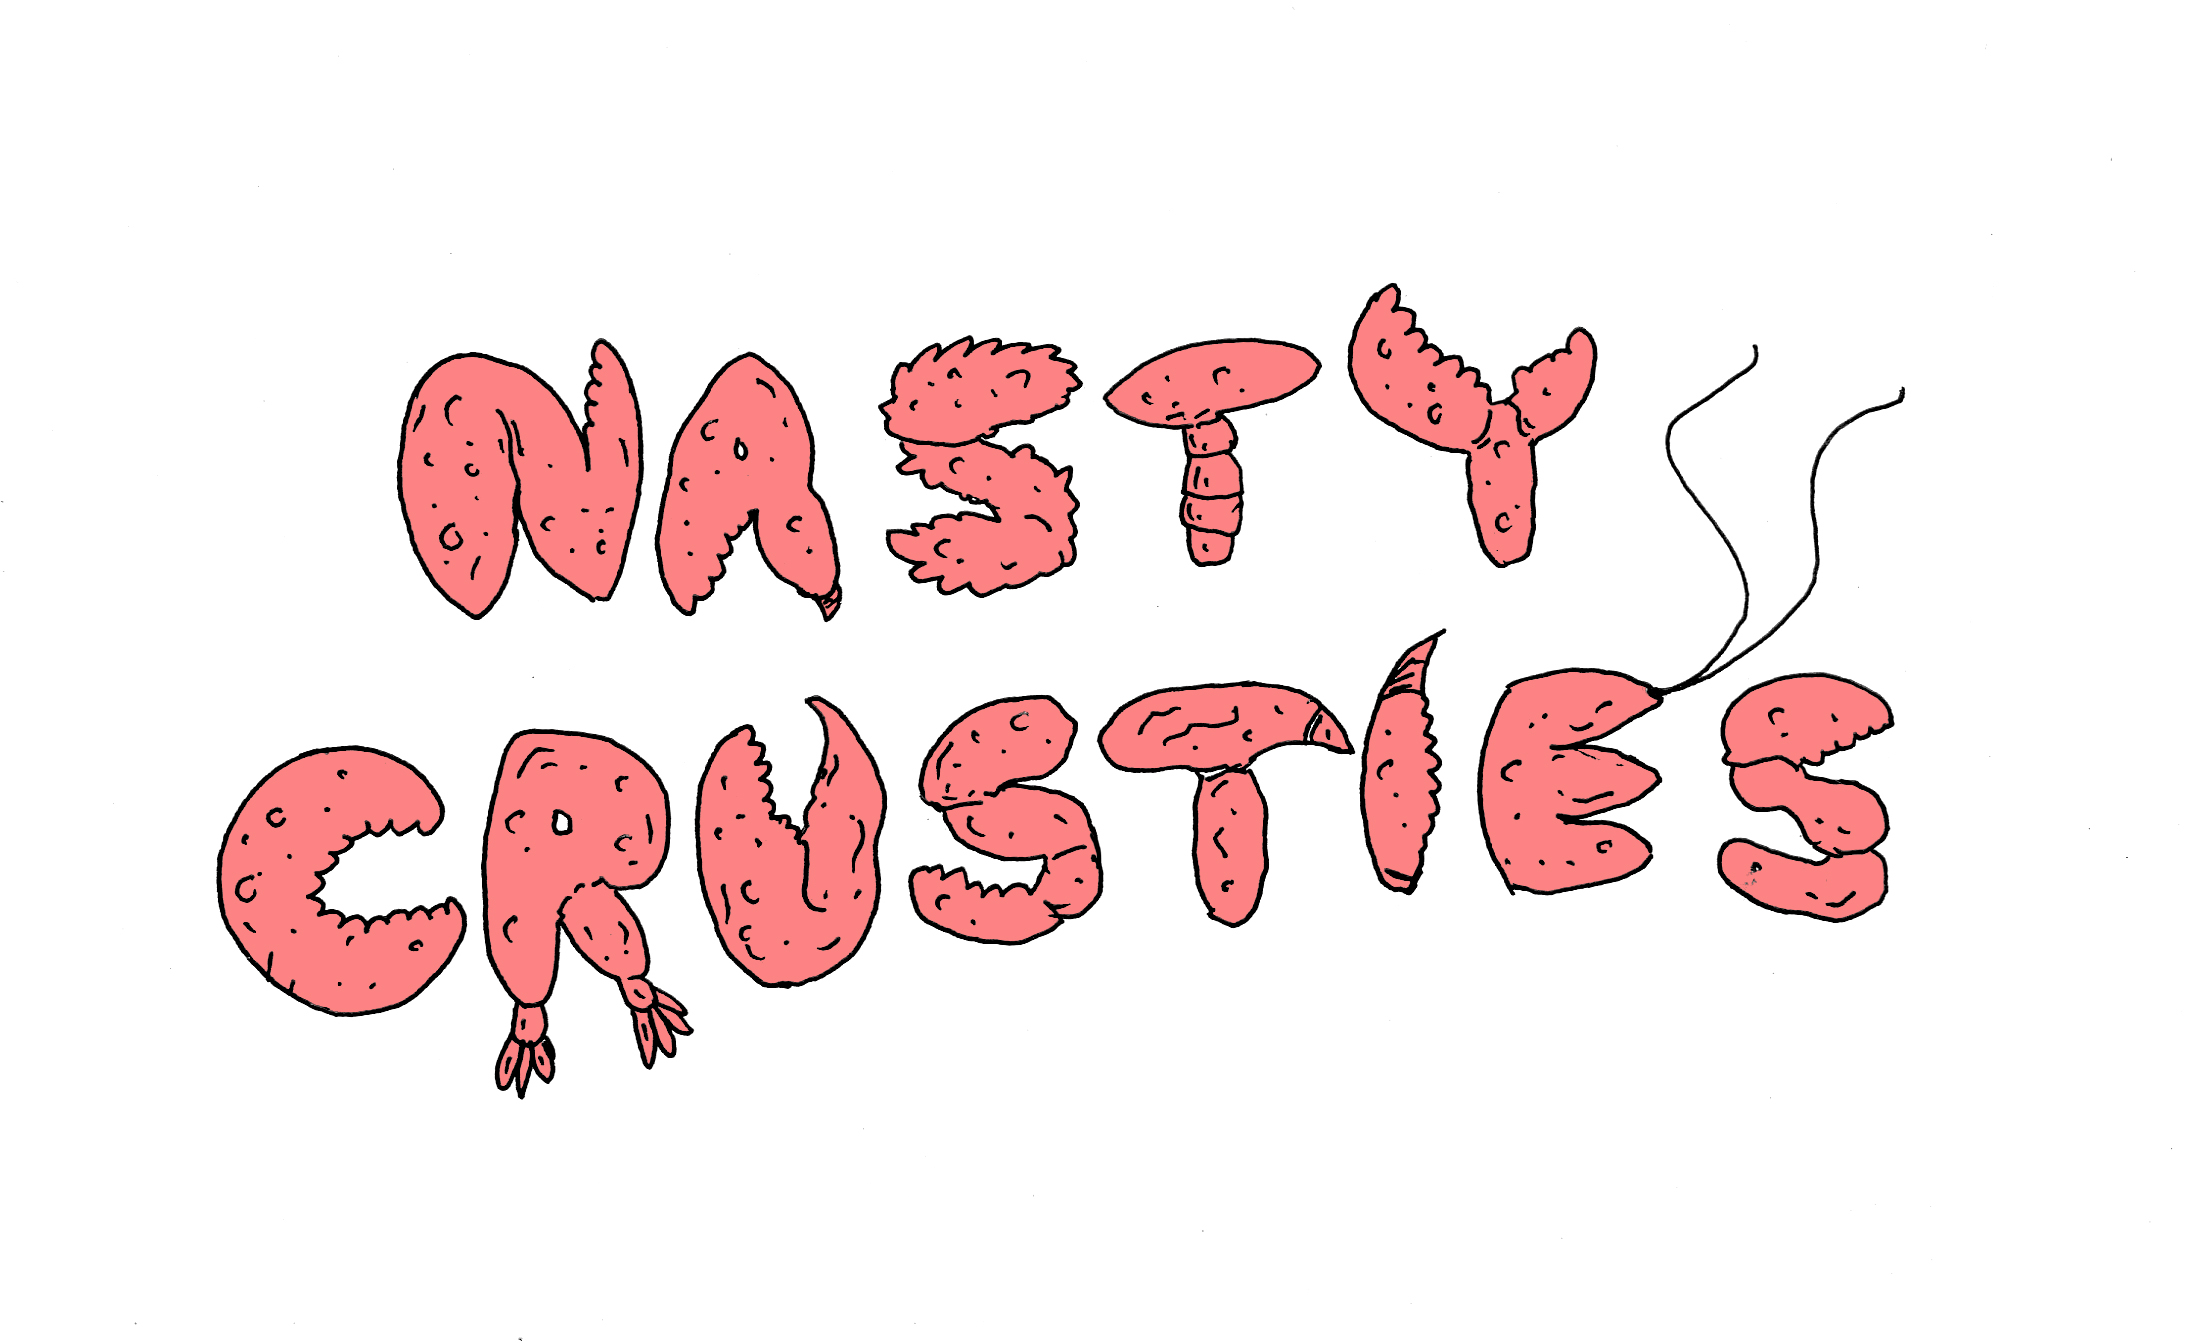 Nasty Crusties